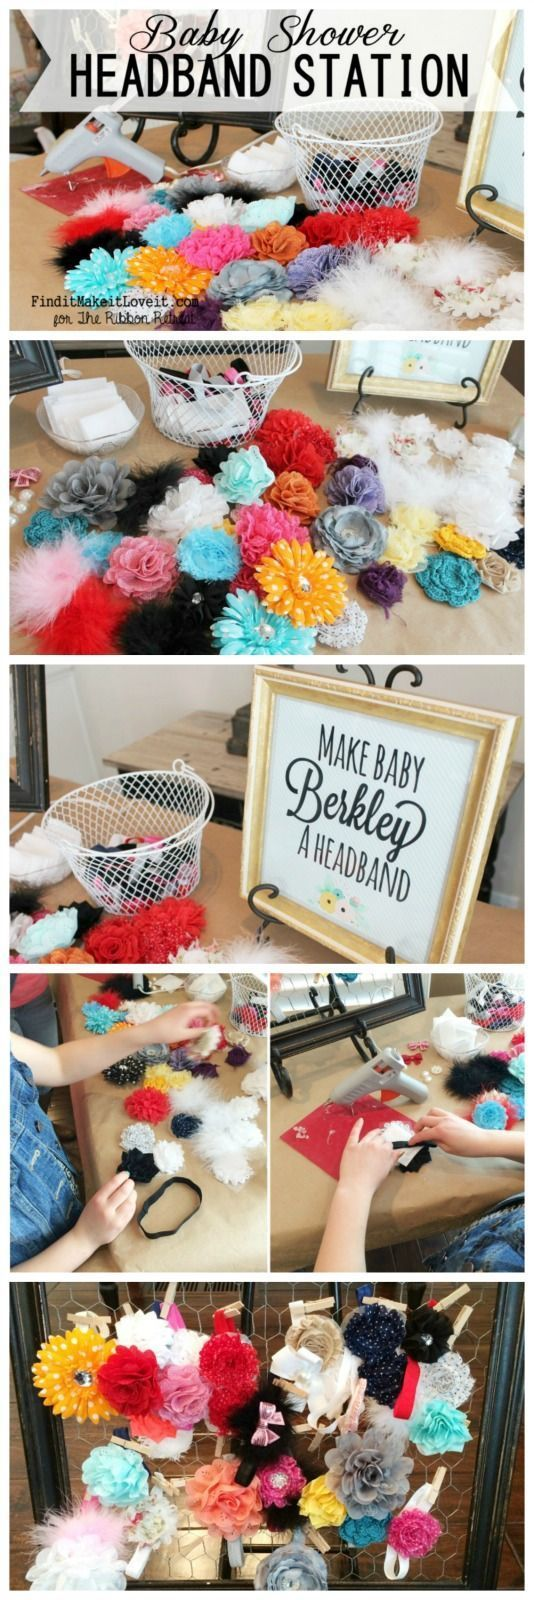 What a cute idea! | Baby Shower Headband Station - The Ribbon Retreat Blog